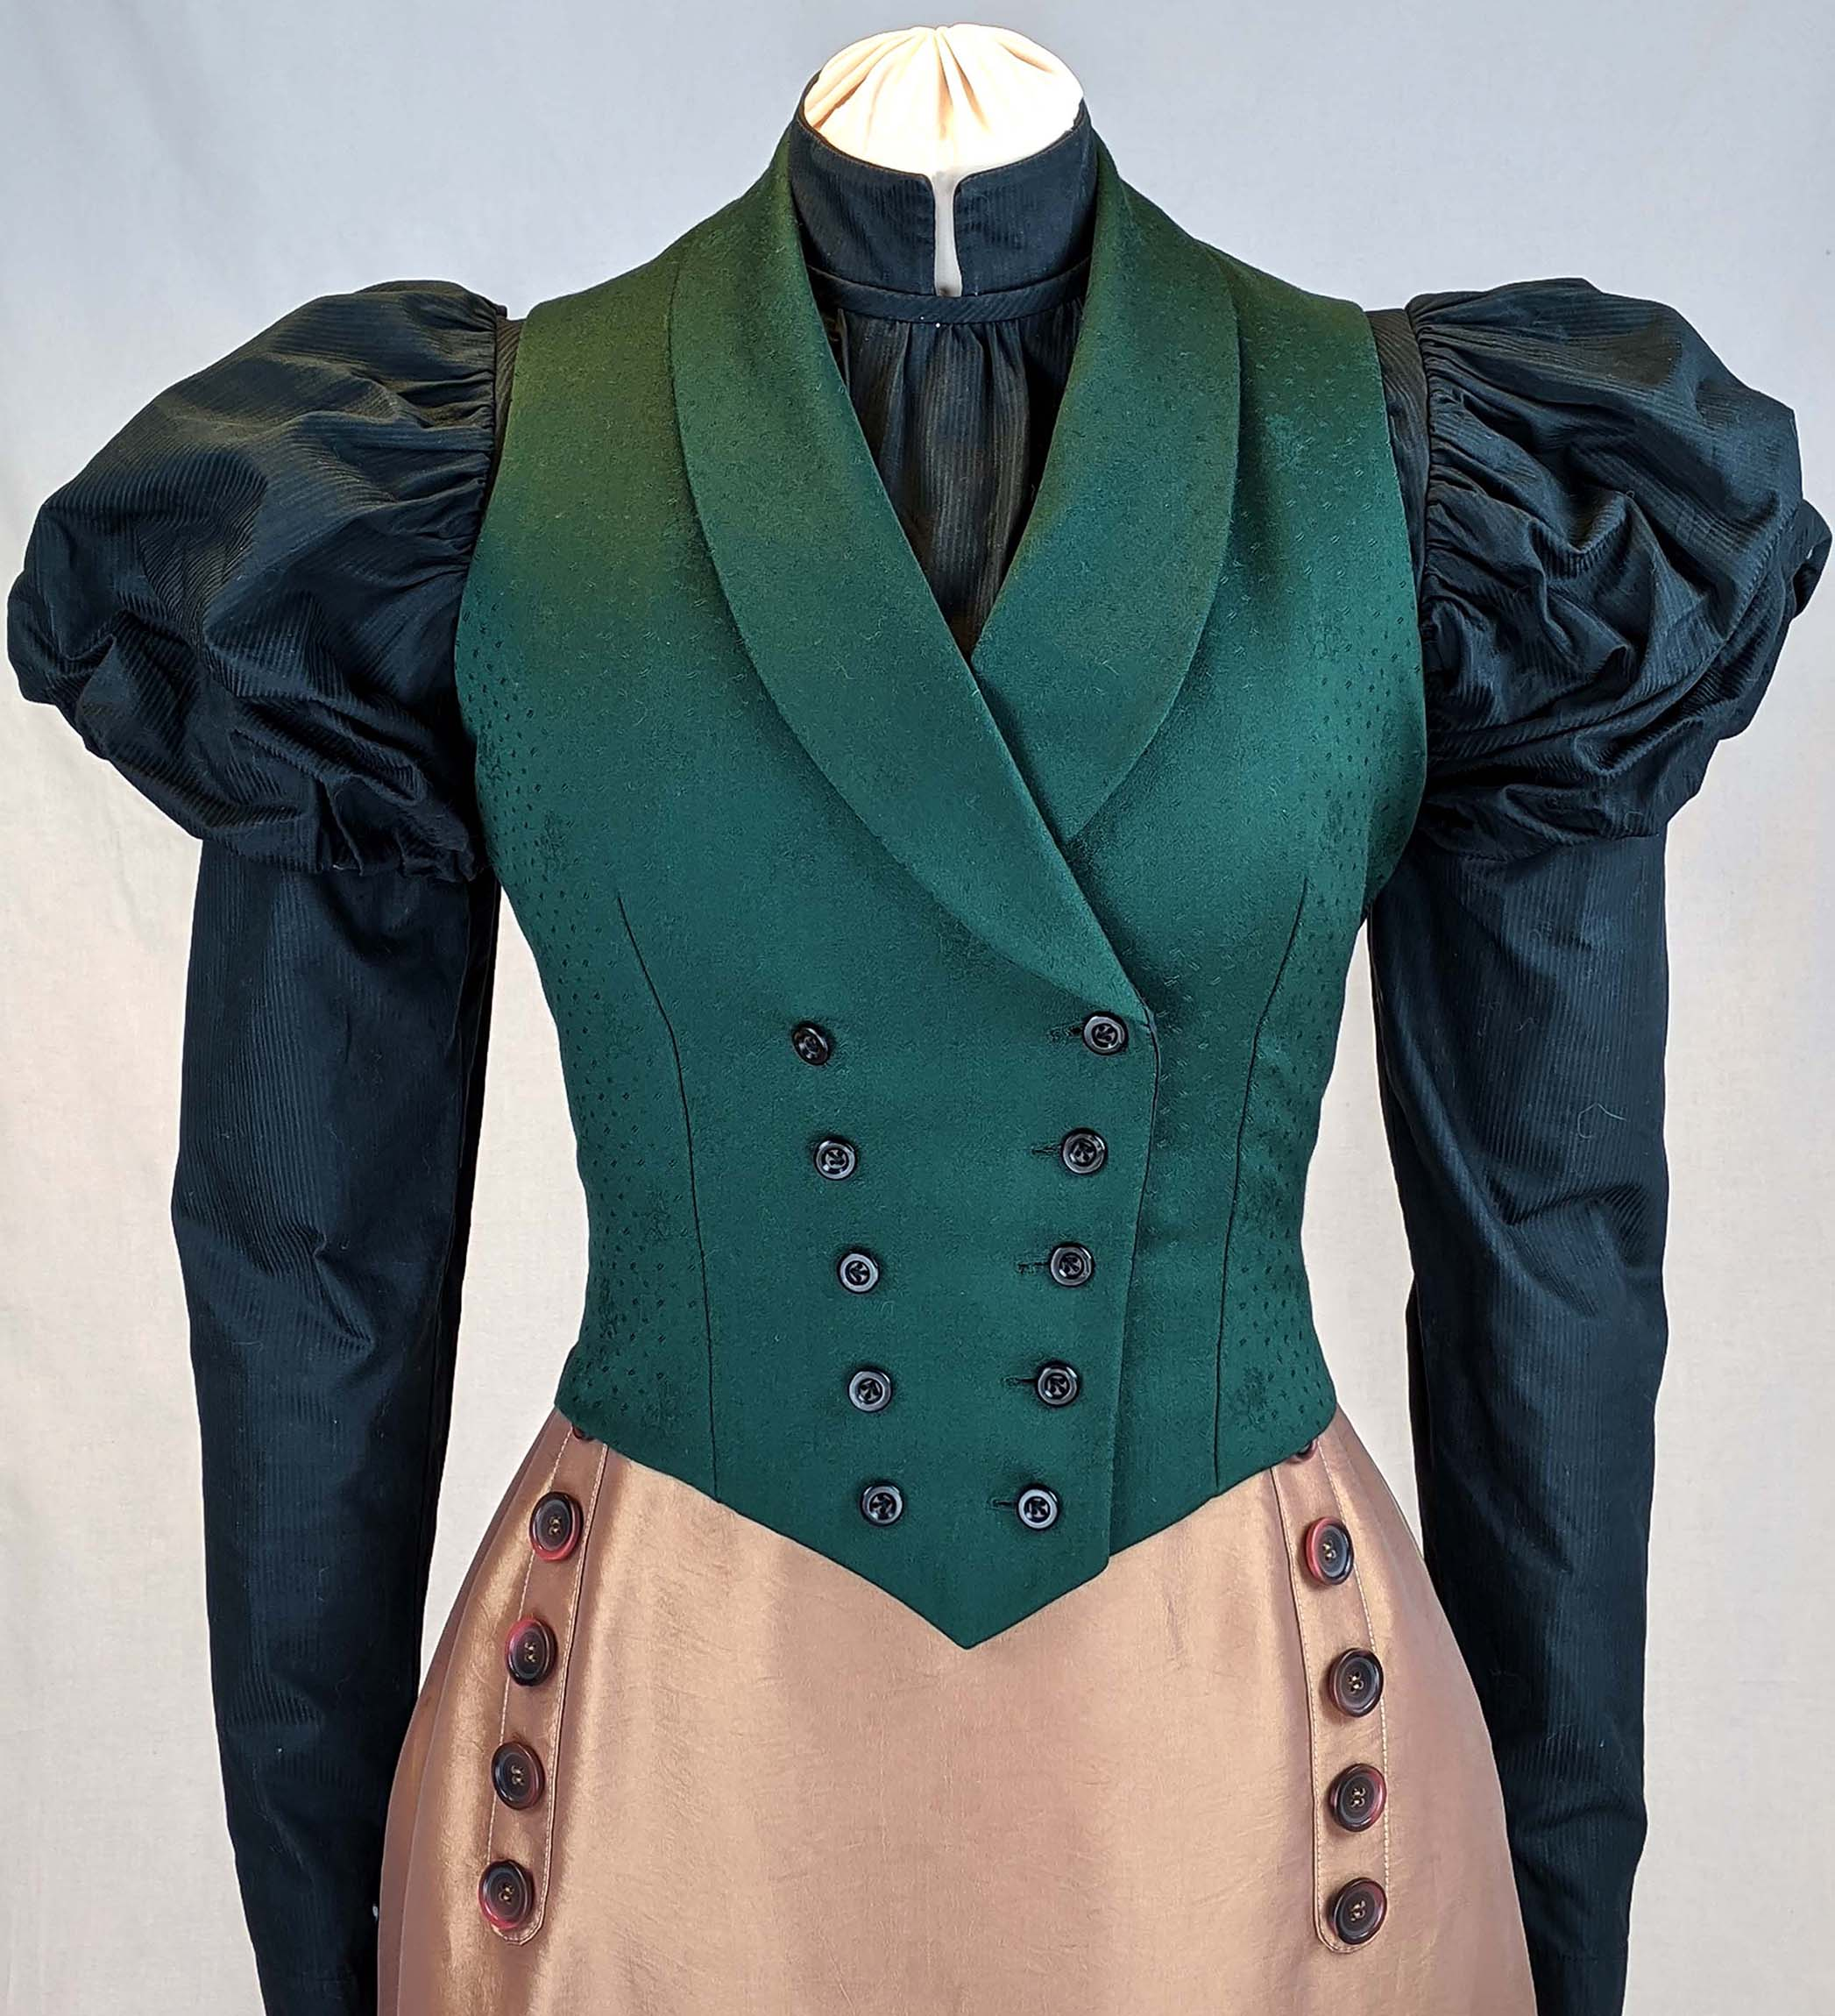 Ladies Vest circa 1890 with two front options Sewing Pattern #0220 Size US 8-30 (EU 34-56)